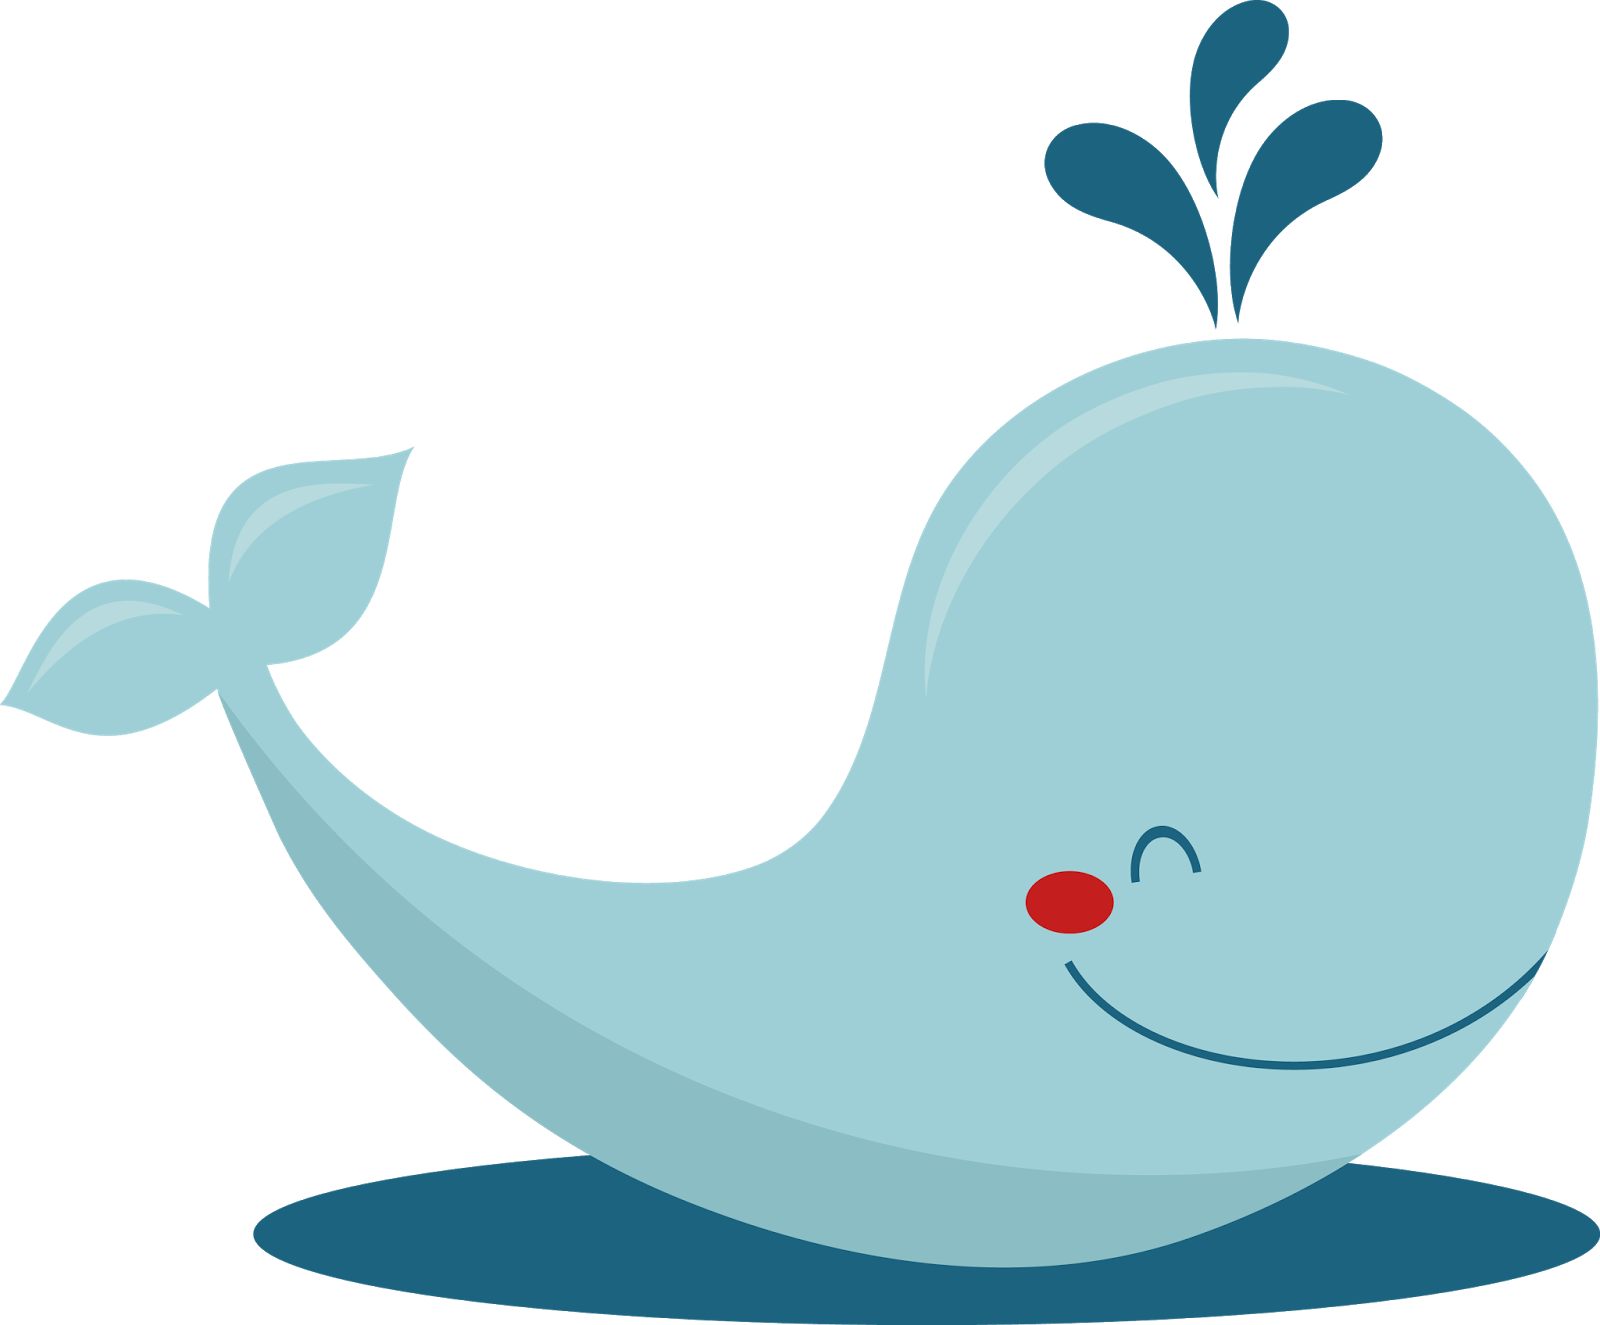 Free baby whale clipart vector royalty free stock Free Whale Cliparts, Download Free Clip Art, Free Clip Art on ... vector royalty free stock